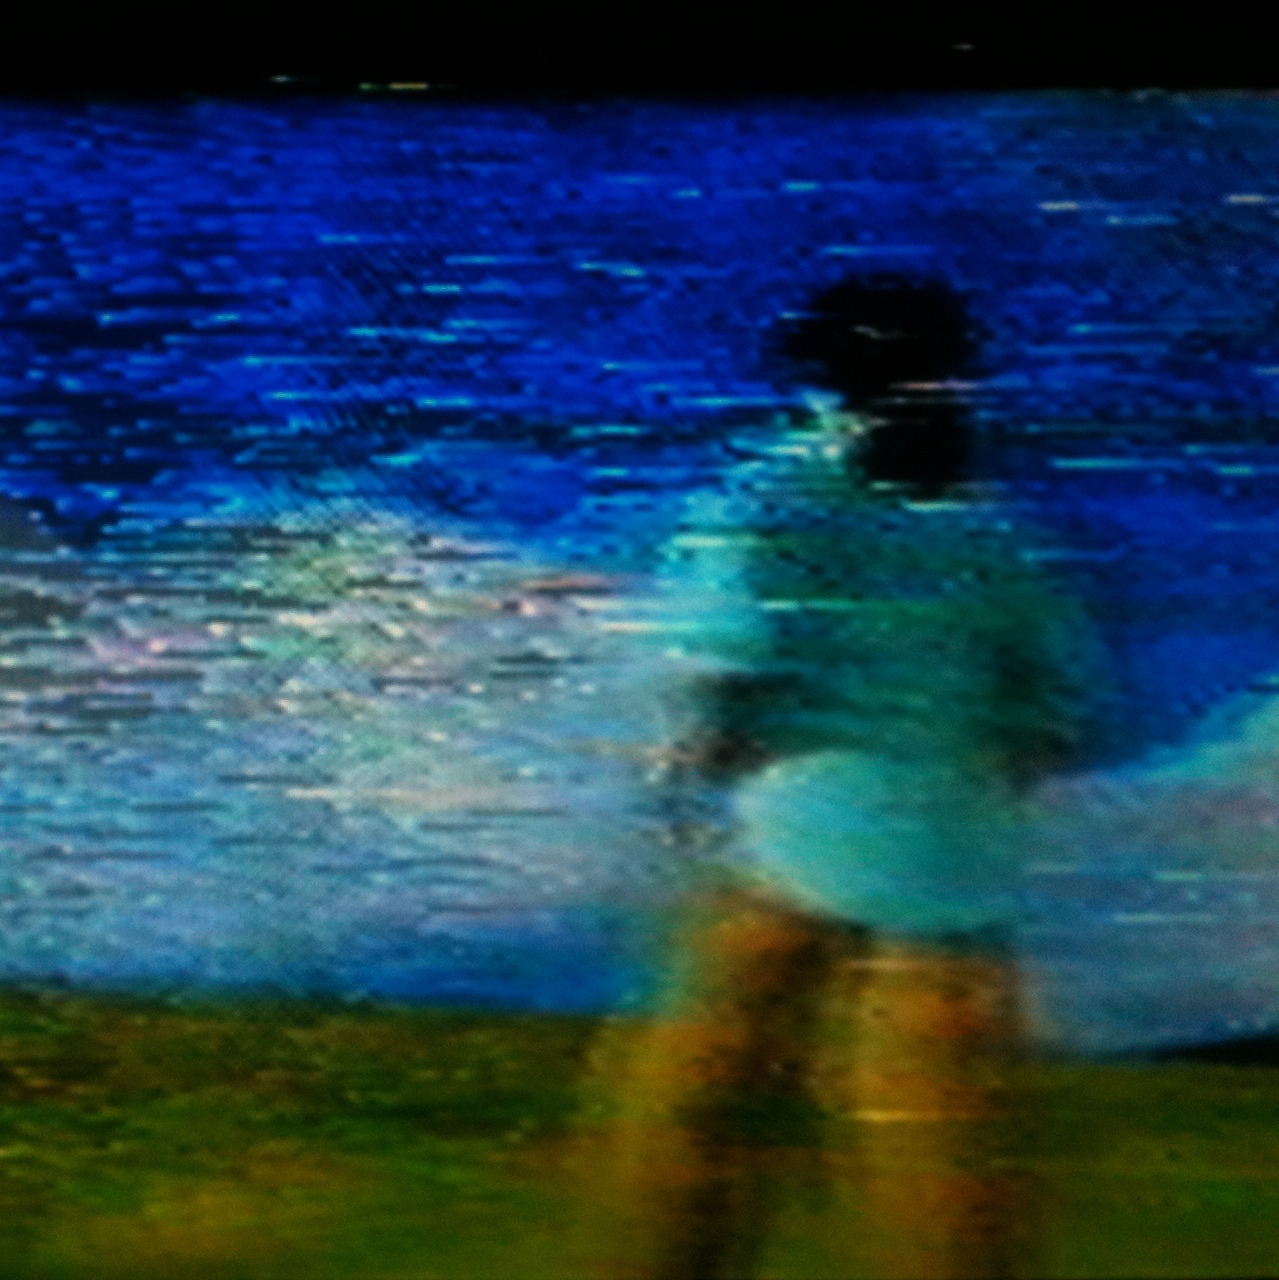 Laguna at the end of FInal Fantasy VIII. Captured on VHS.